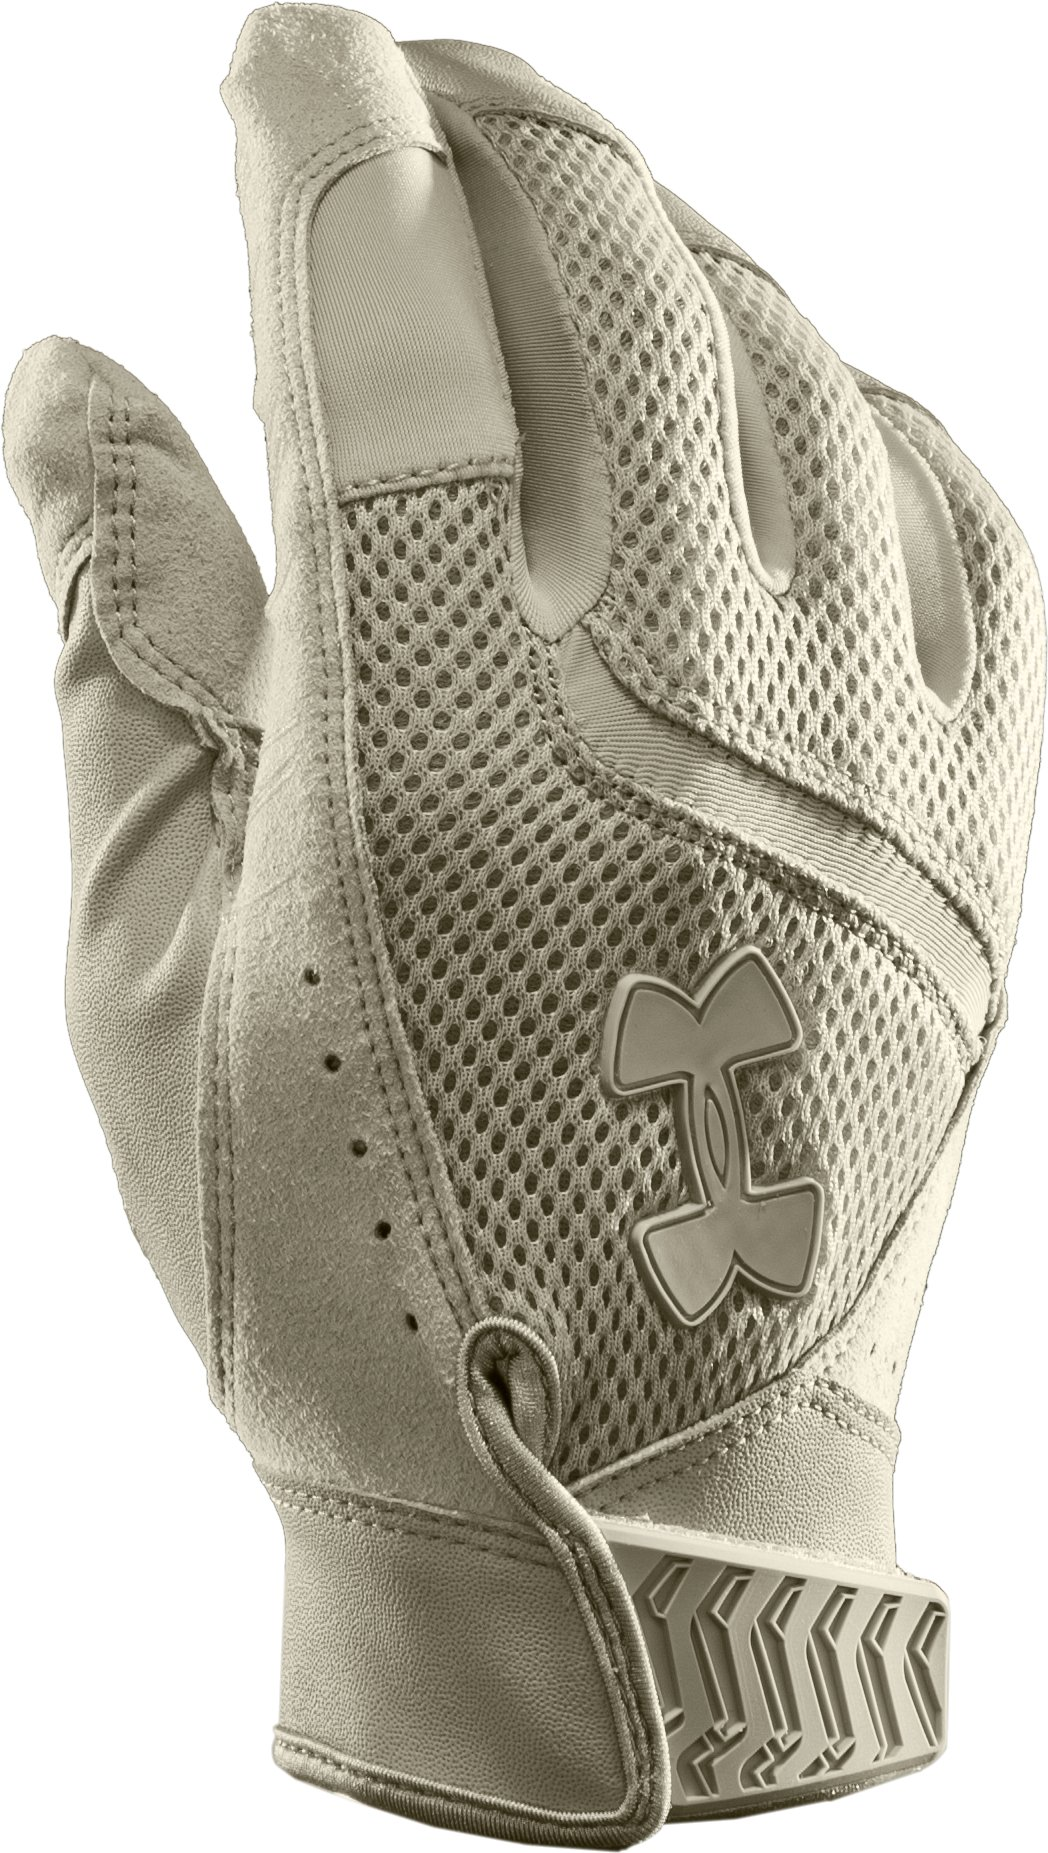 Men's Tactical Summer Blackout Glove, Desert Sand, zoomed image